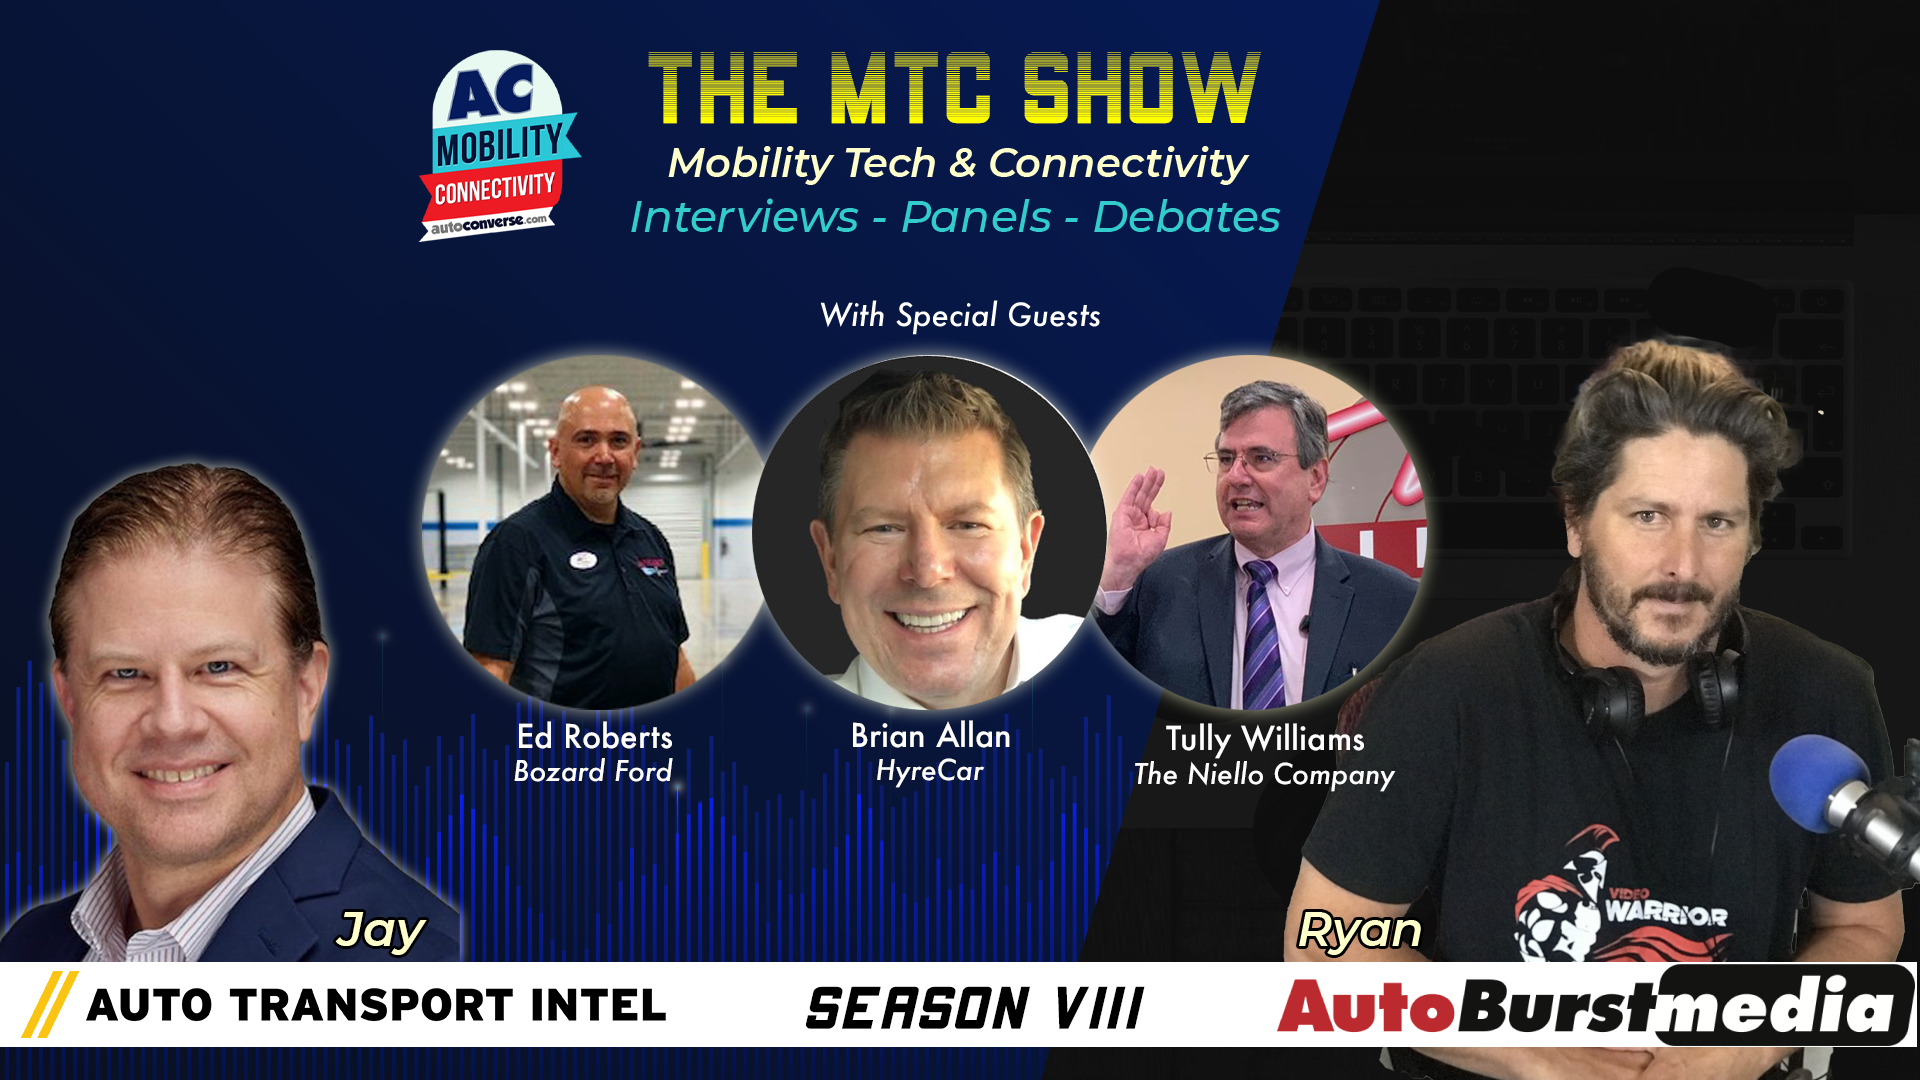 LIVE WED OCT 14. NADA Show to Go Virtual, HyreCar Partners with Midway Rental, and OEM Incentives for Fixed Ops Departments